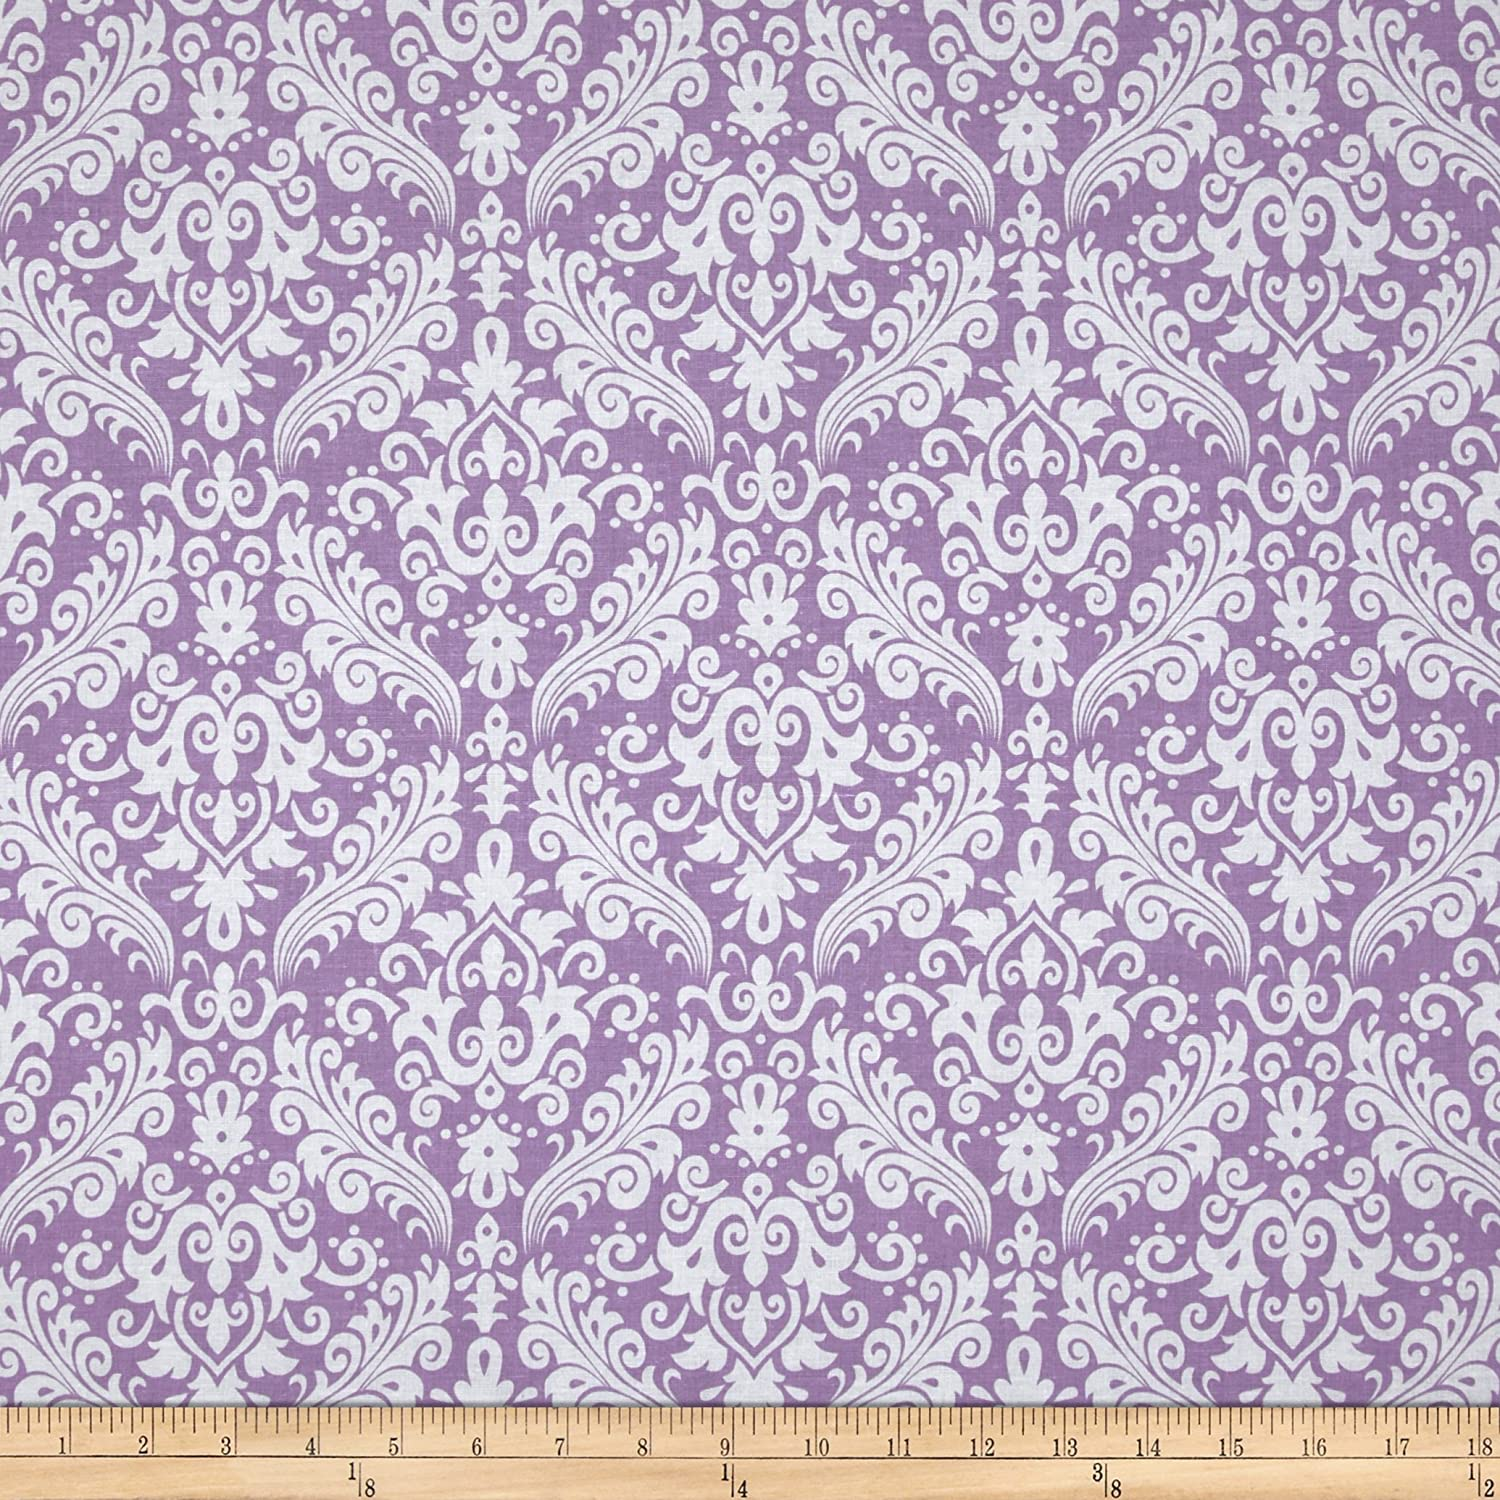 Riley Blake Medium Damask Lavender Fabric портмоне r blake business melvin advocate melvin advocate